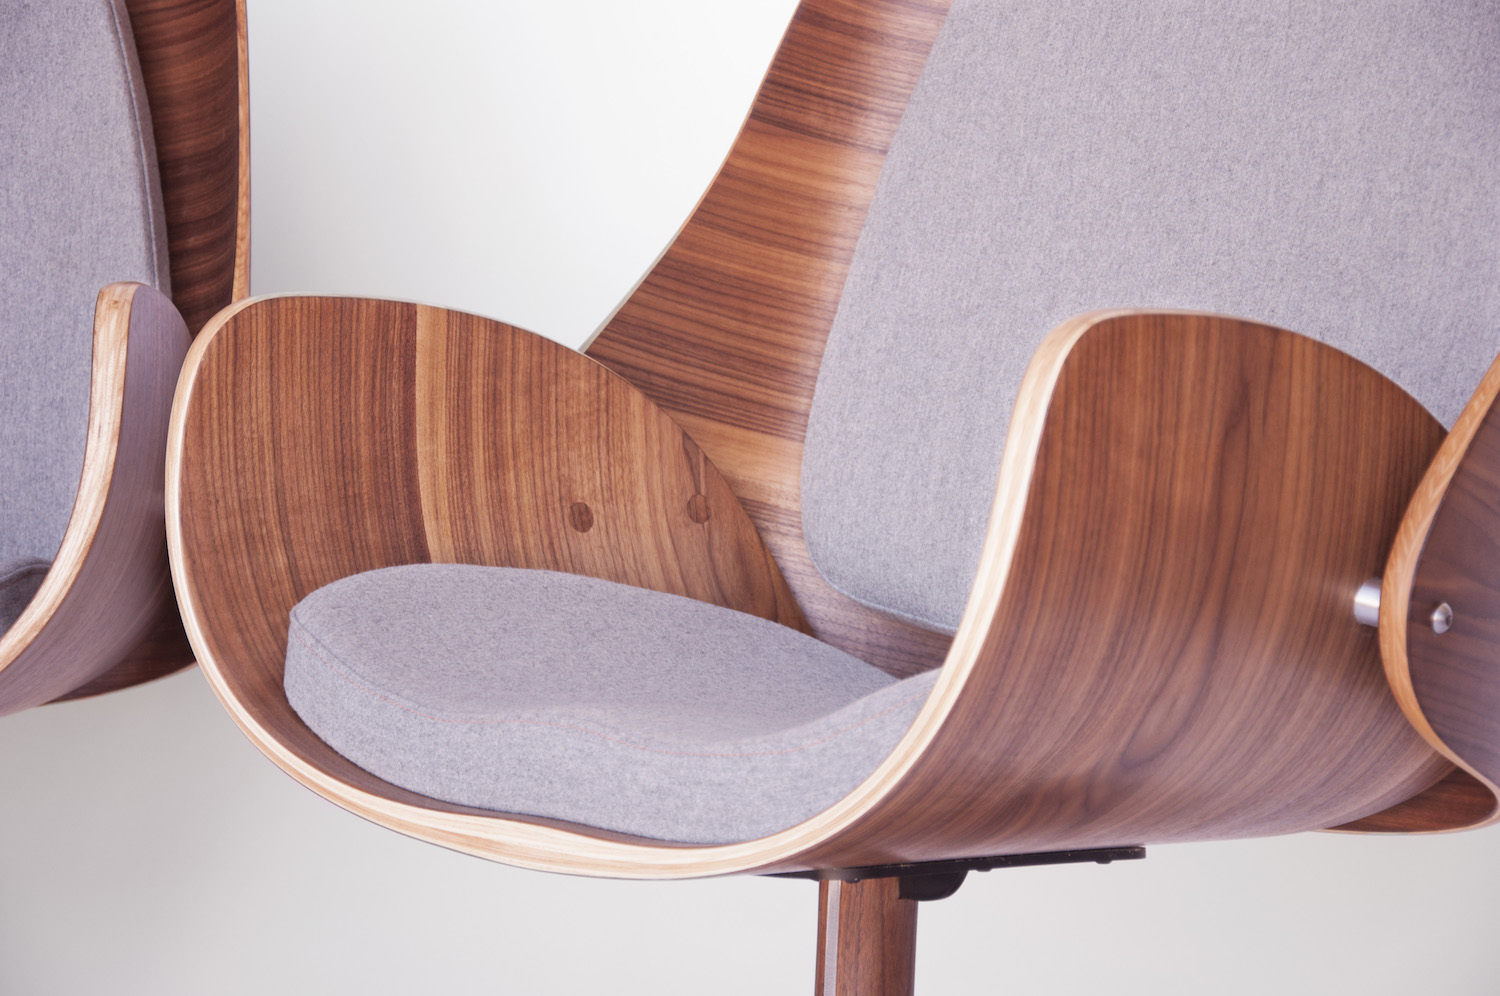 q co - q co is a Colorado-based design and manufacturing house specializing in the production of high-end furniture, lighting and object designs.